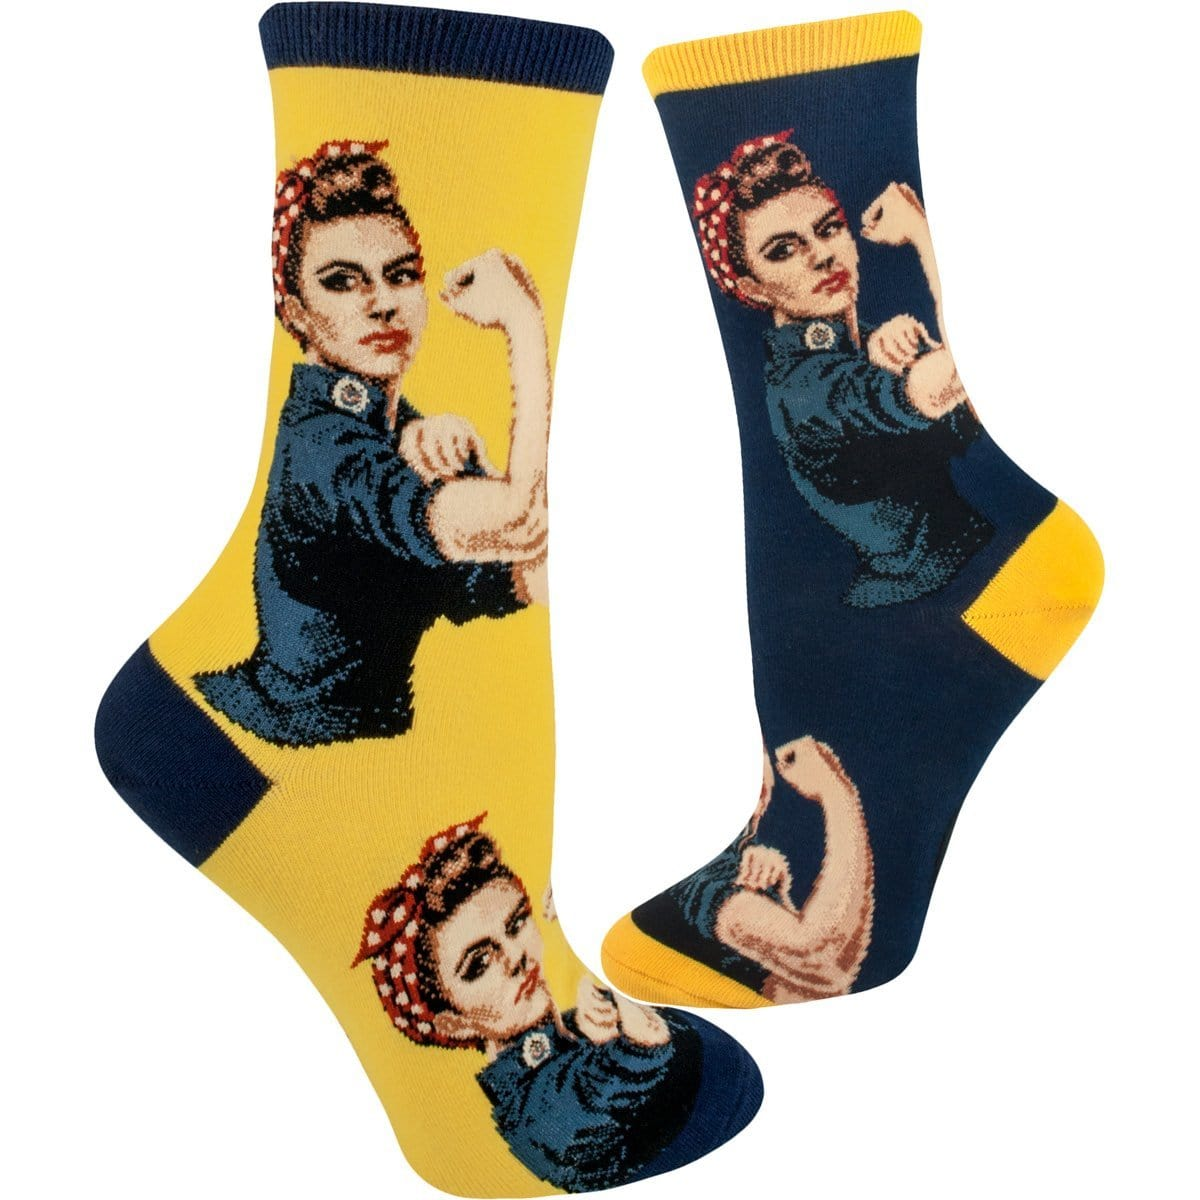 Rosie the Riveter Women's Crew Sock Navy